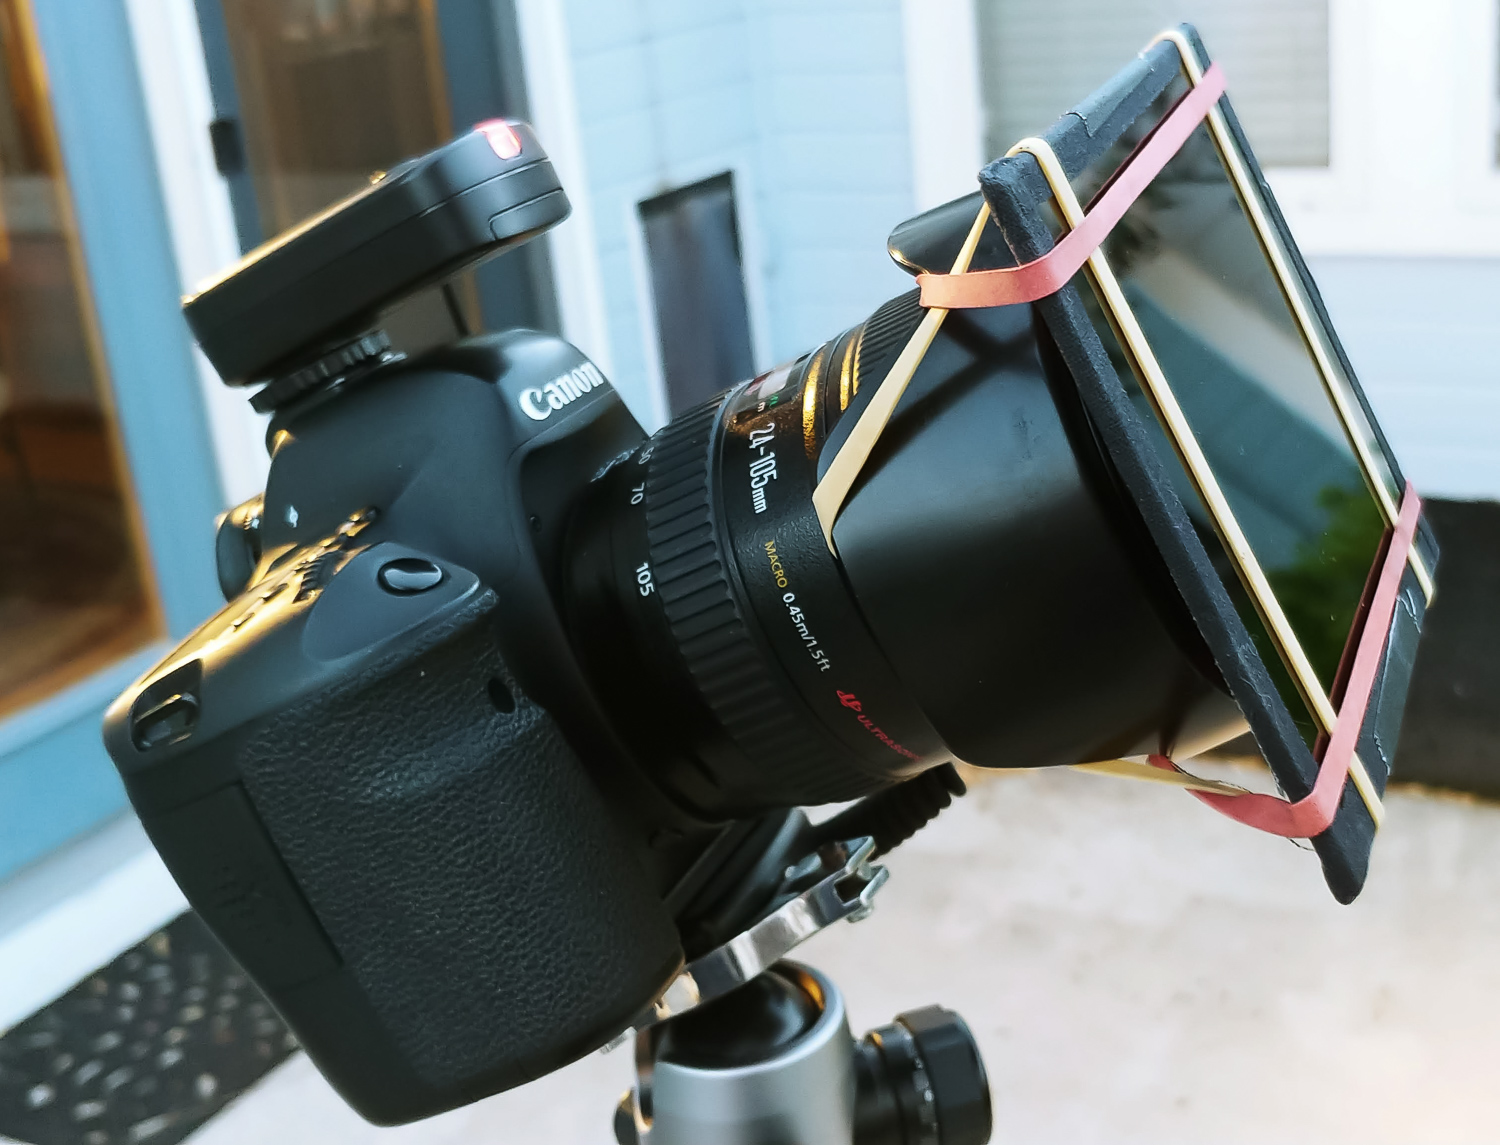 Image: It's funky, but it works. Reverse the lens hood and use rubber bands to attach the weld...